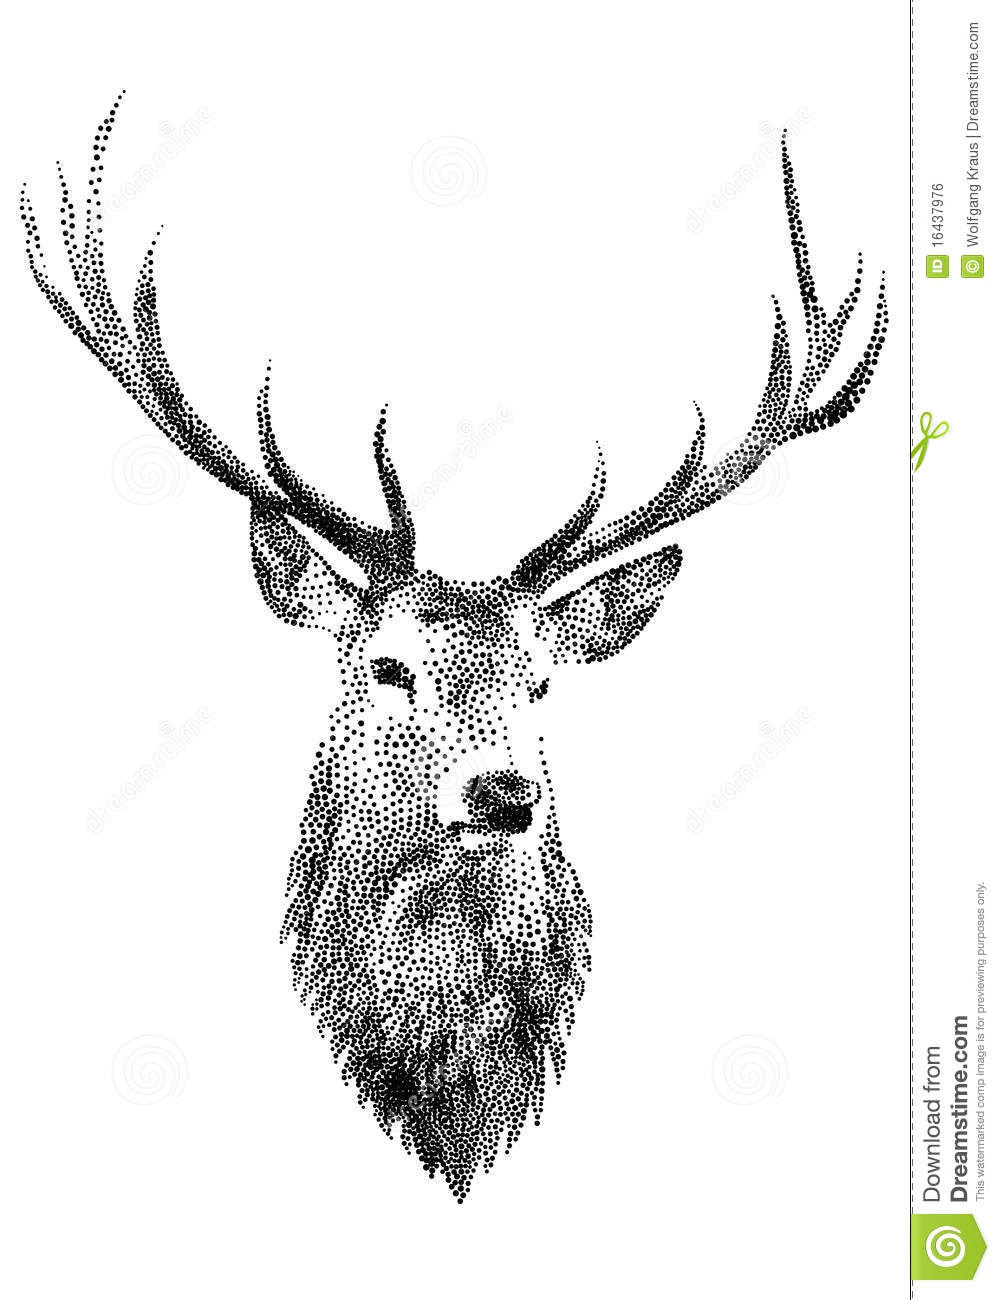 Deer Head, Royalty Free Stock Image - Image: 16437976